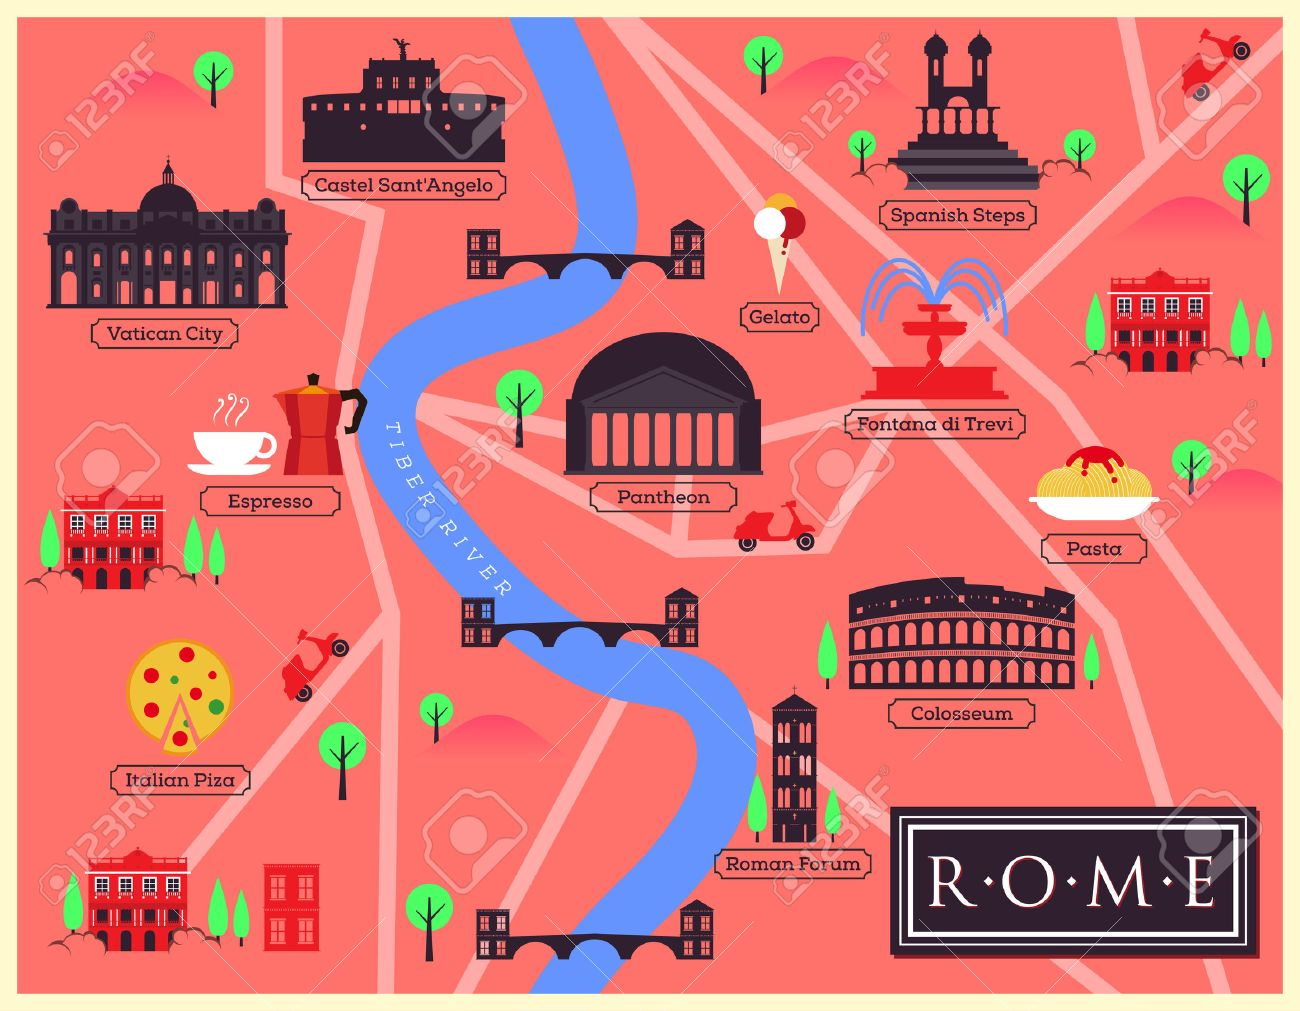 City Map Of Rome, Italy Royalty Free Cliparts, Vectors, And Stock ...